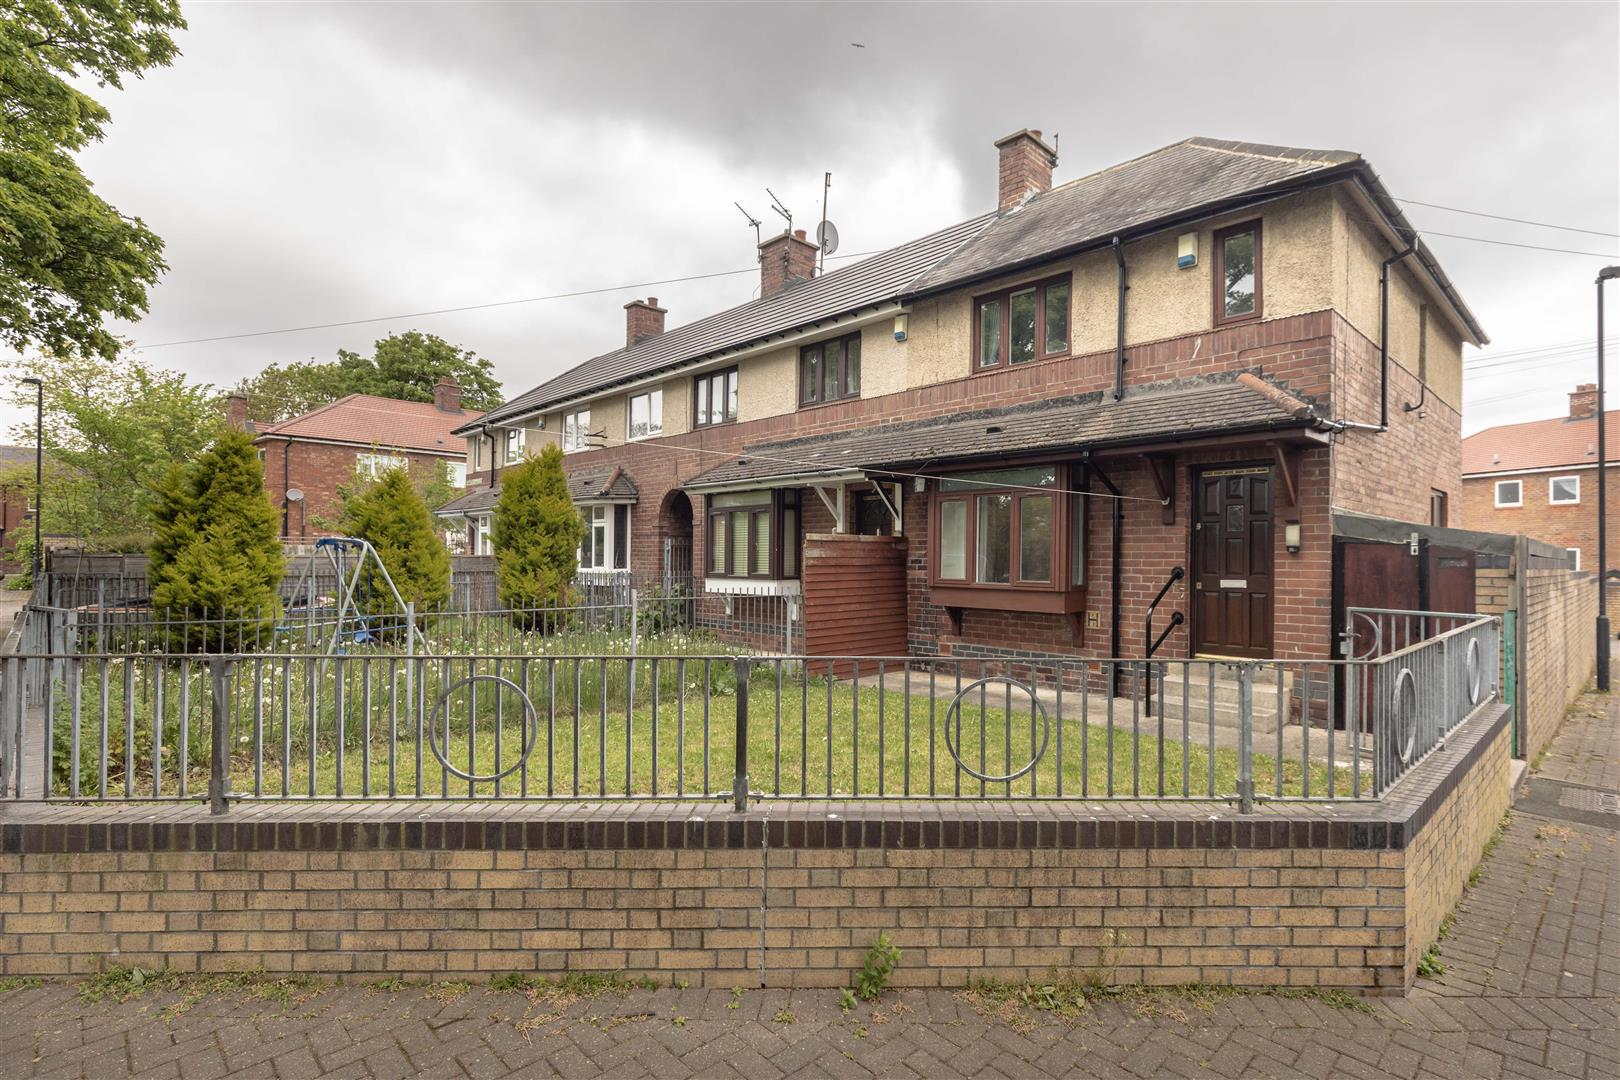 2 bed end of terrace house for sale in North Shields, NE29 7BS 0